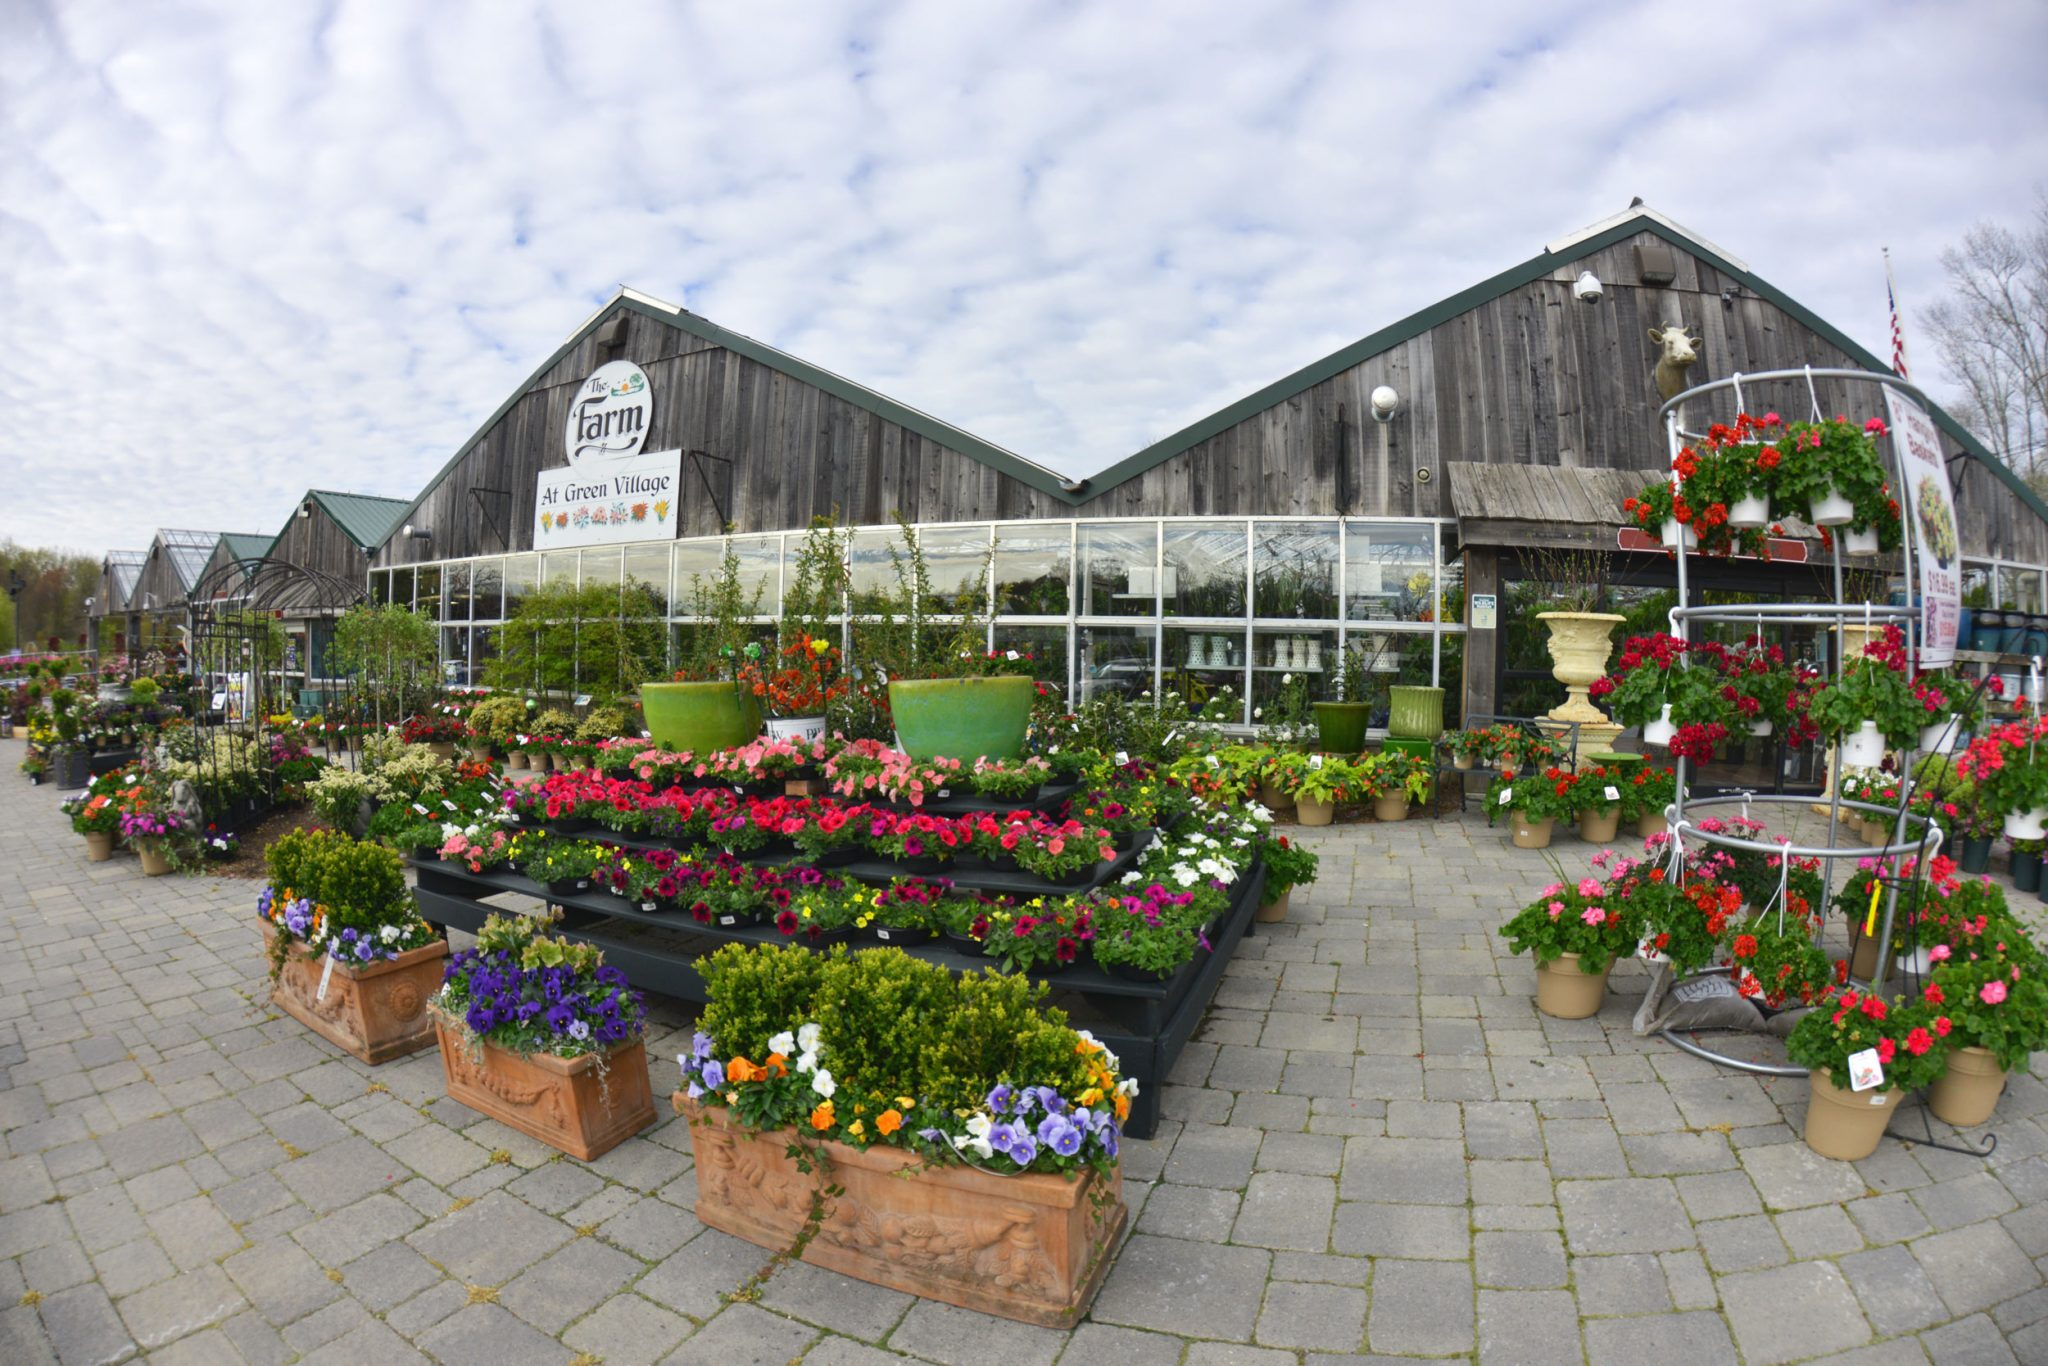 About the Farm at Green Village